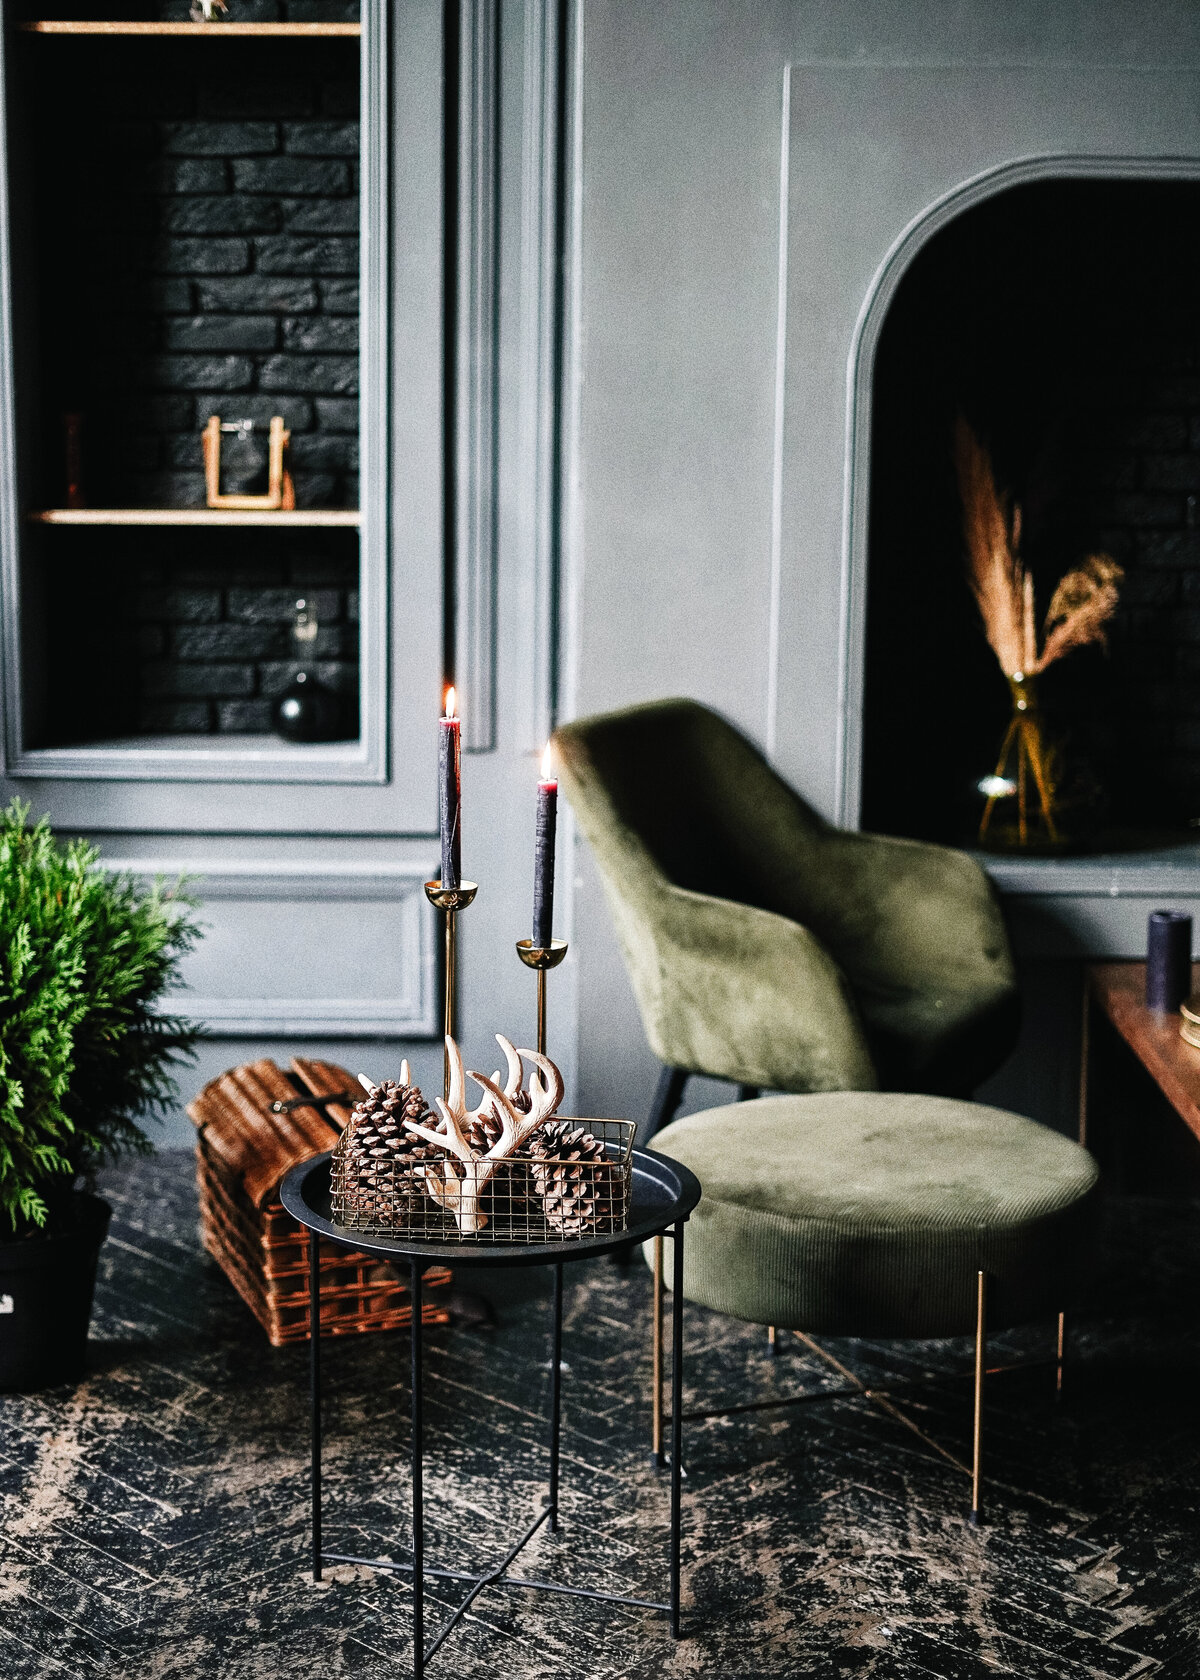 Dark grey walls surround a moss green velvet chair in a moody lounge with black candlesticks and pinecones in the foreground.